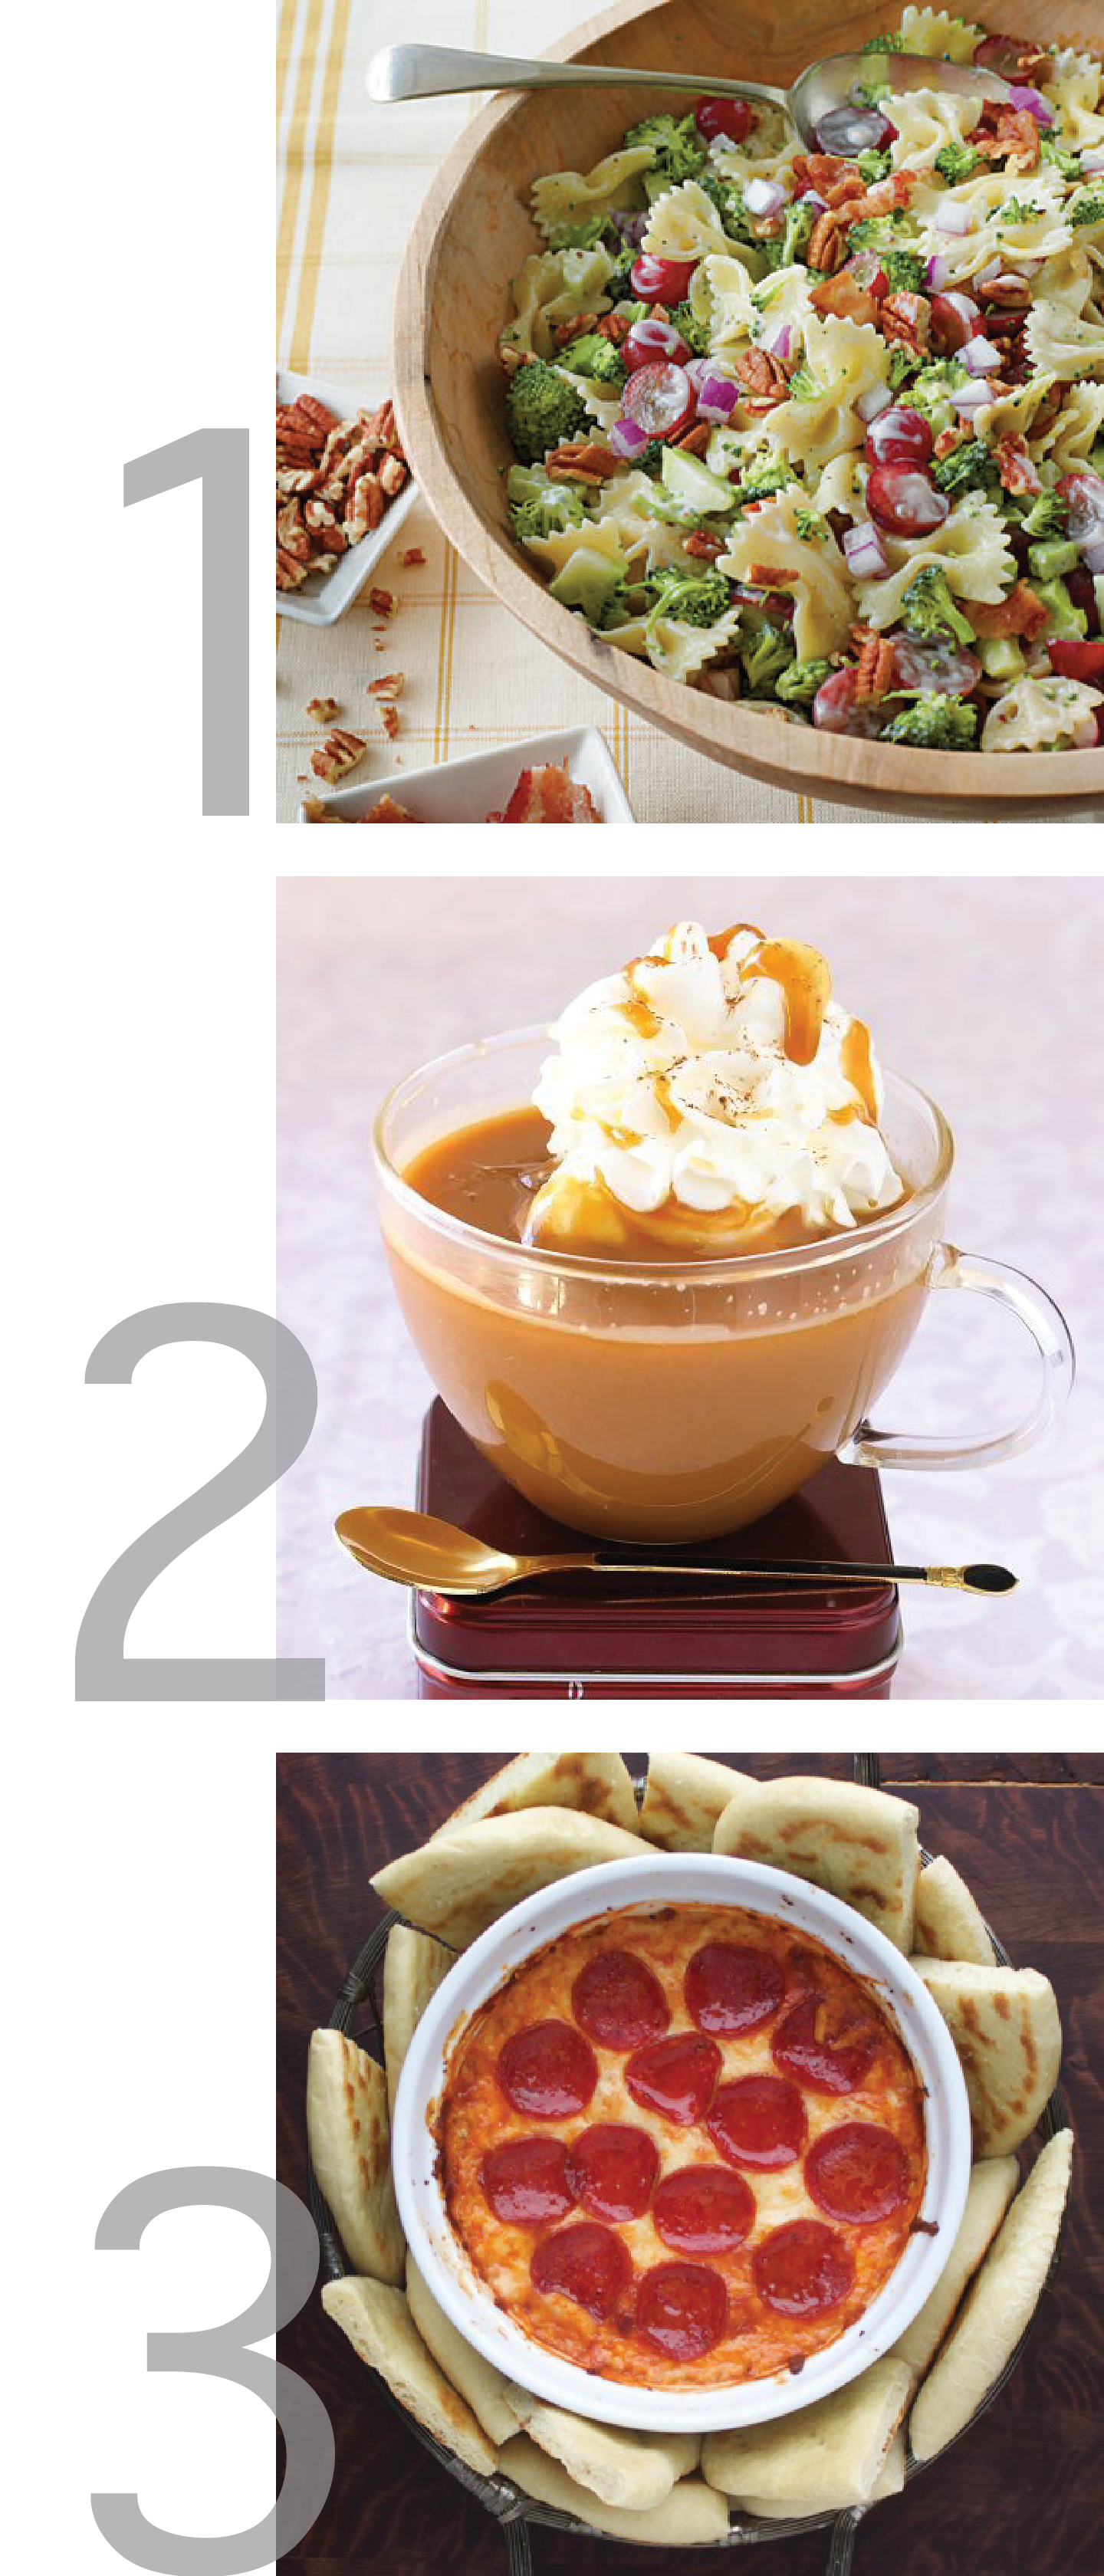 This photo is a simple graphic that shows photos of broccoli salad, salted caramel hot chocolate and pizza dip.